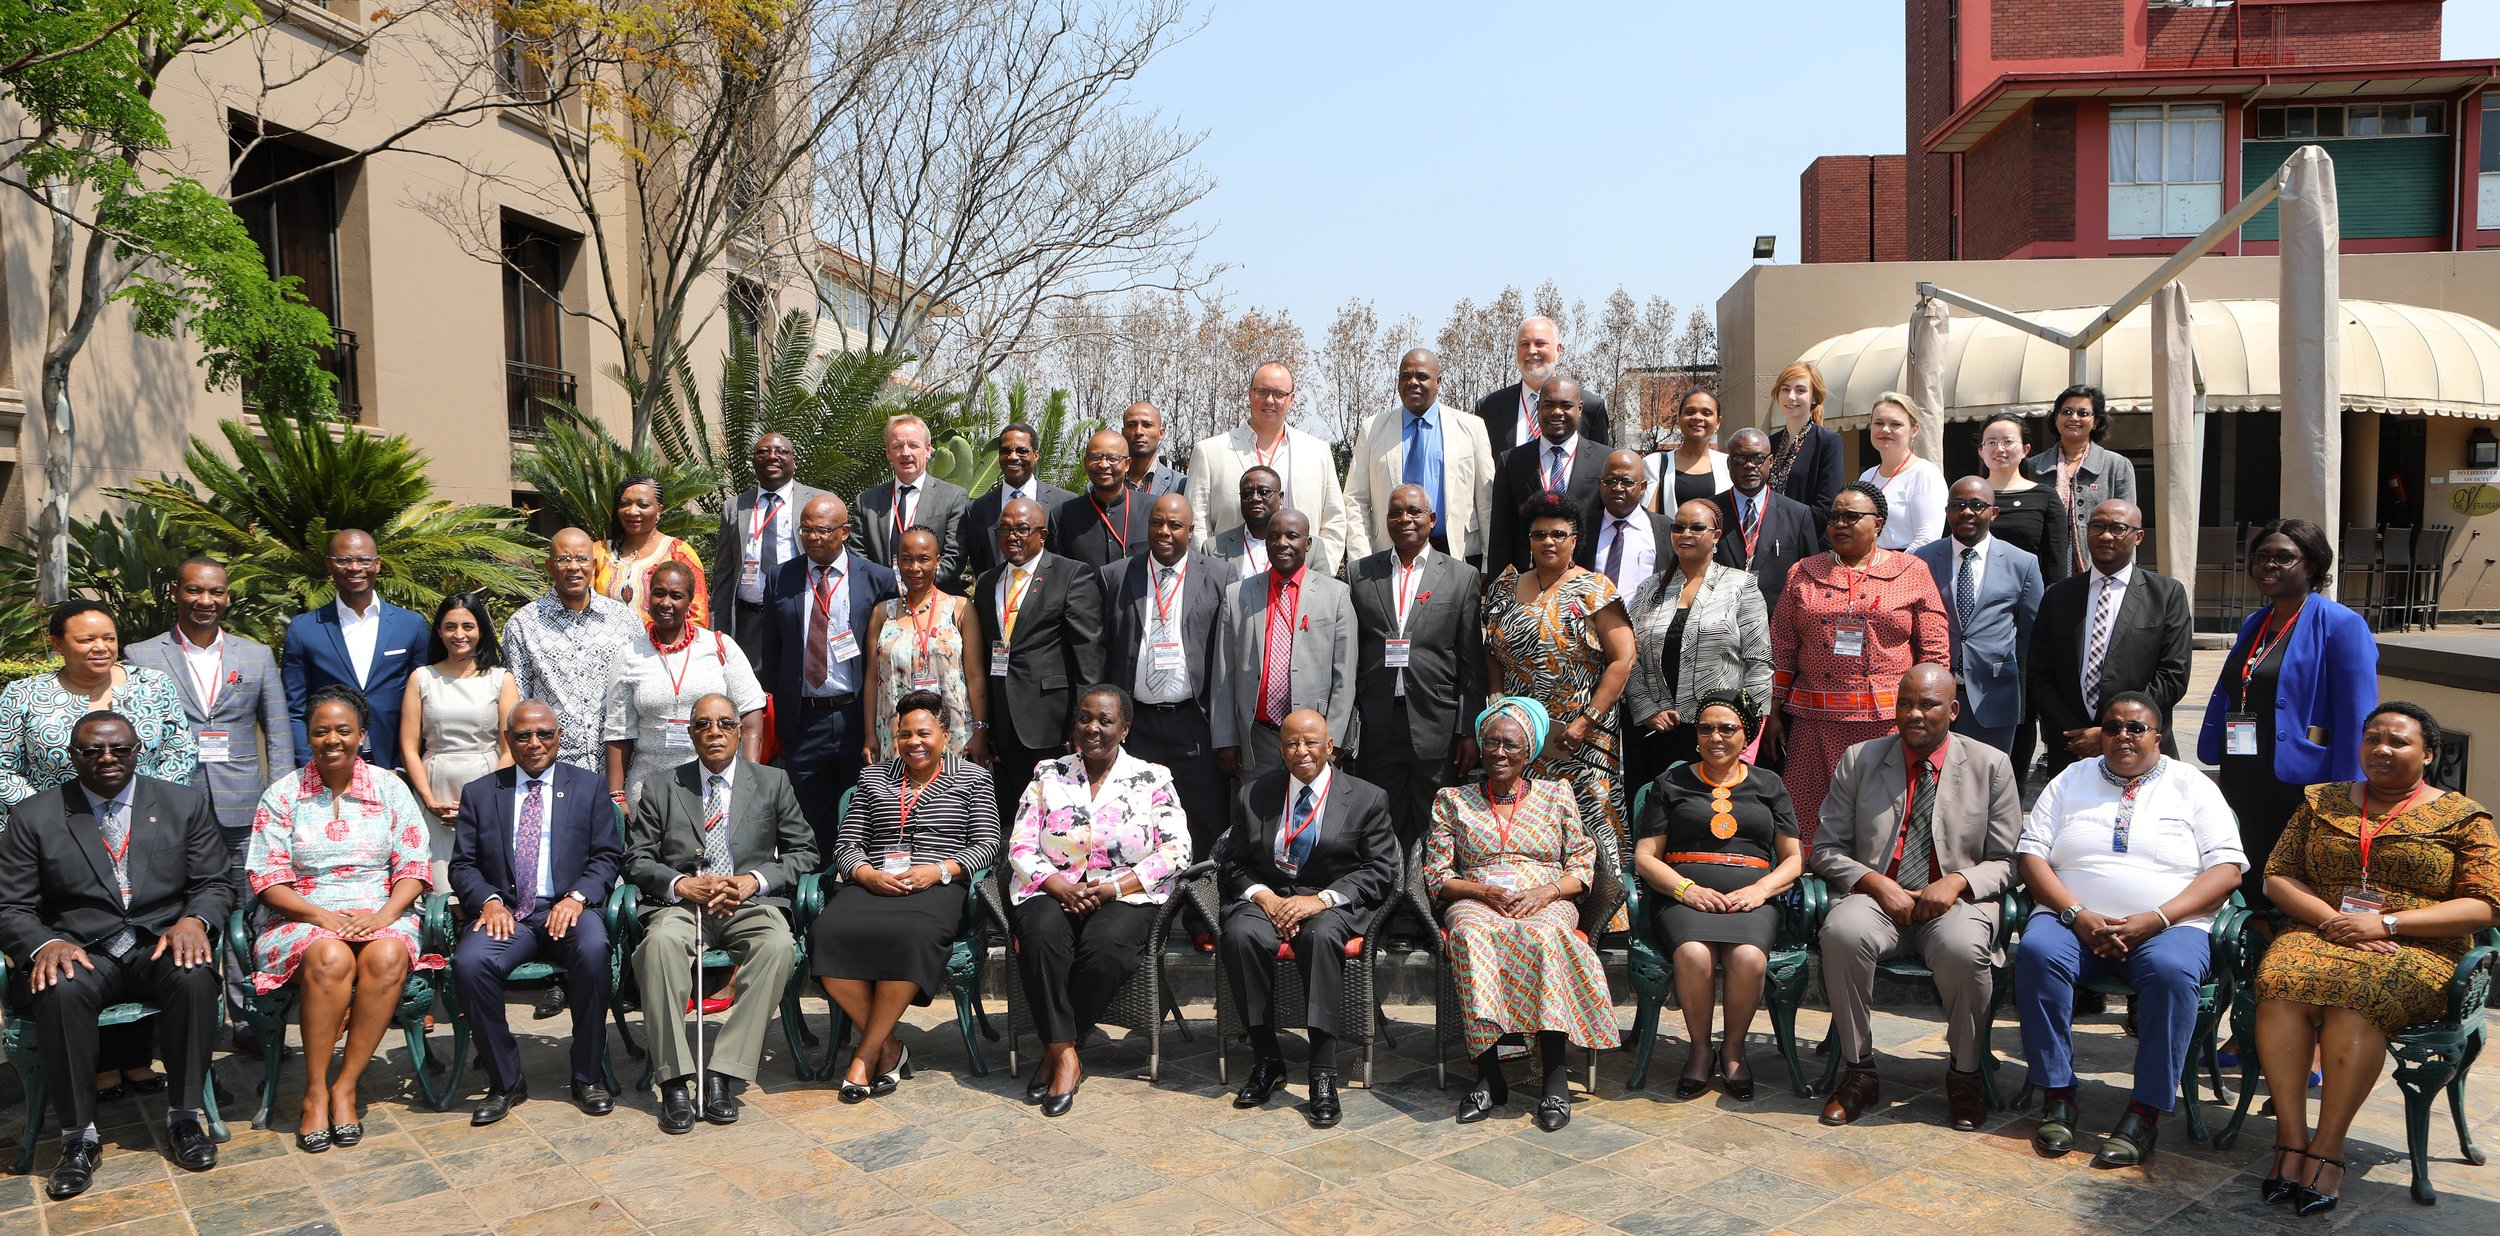 Champions with African Ministers, Deputy Ministers, Permanent Secretaries, Parliamentarians and SADC Parliamentary Forum, National AIDS Councils, UNAIDS, Civil Society Development Partners, Private Sector and HEARD